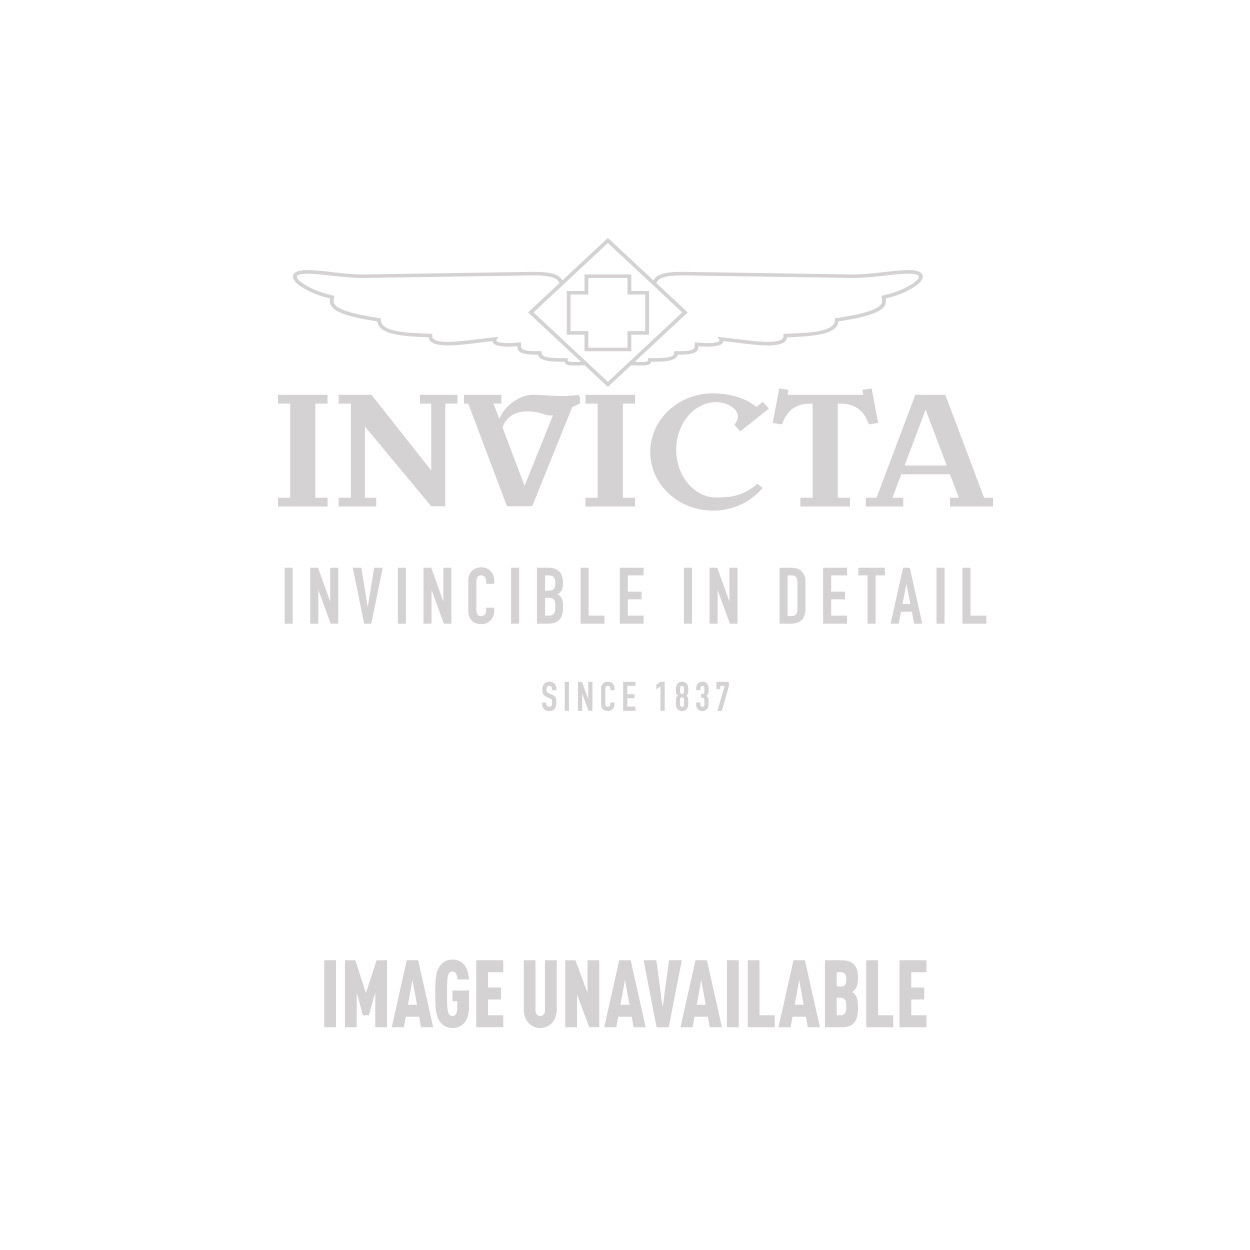 Invicta Sea Spider Mechanical Watch - Gunmetal case with Gunmetal, Grey tone Stainless Steel, Polyurethane band - Model 1264